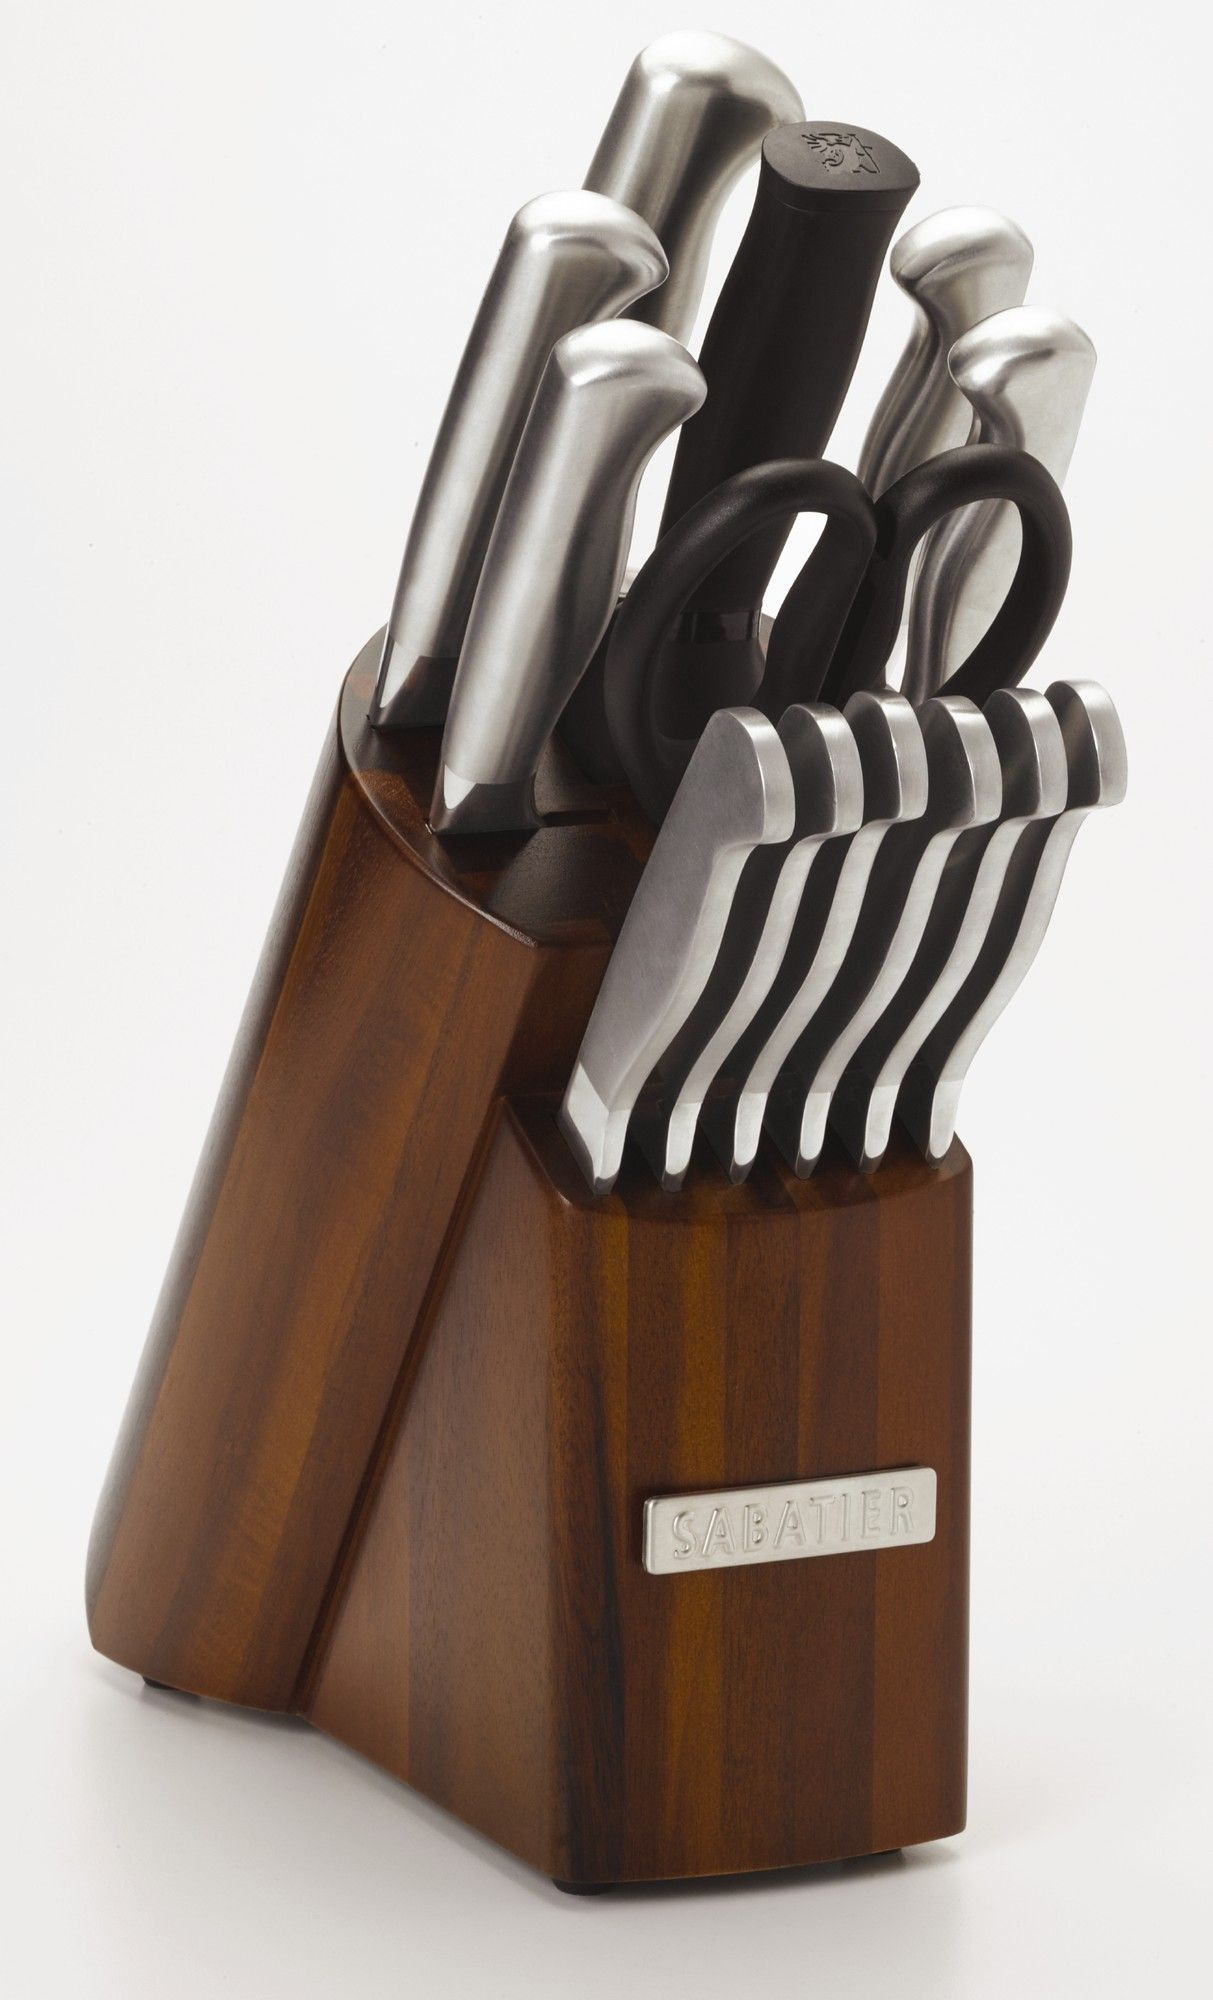 Without Wooden Knife Blocks Knives